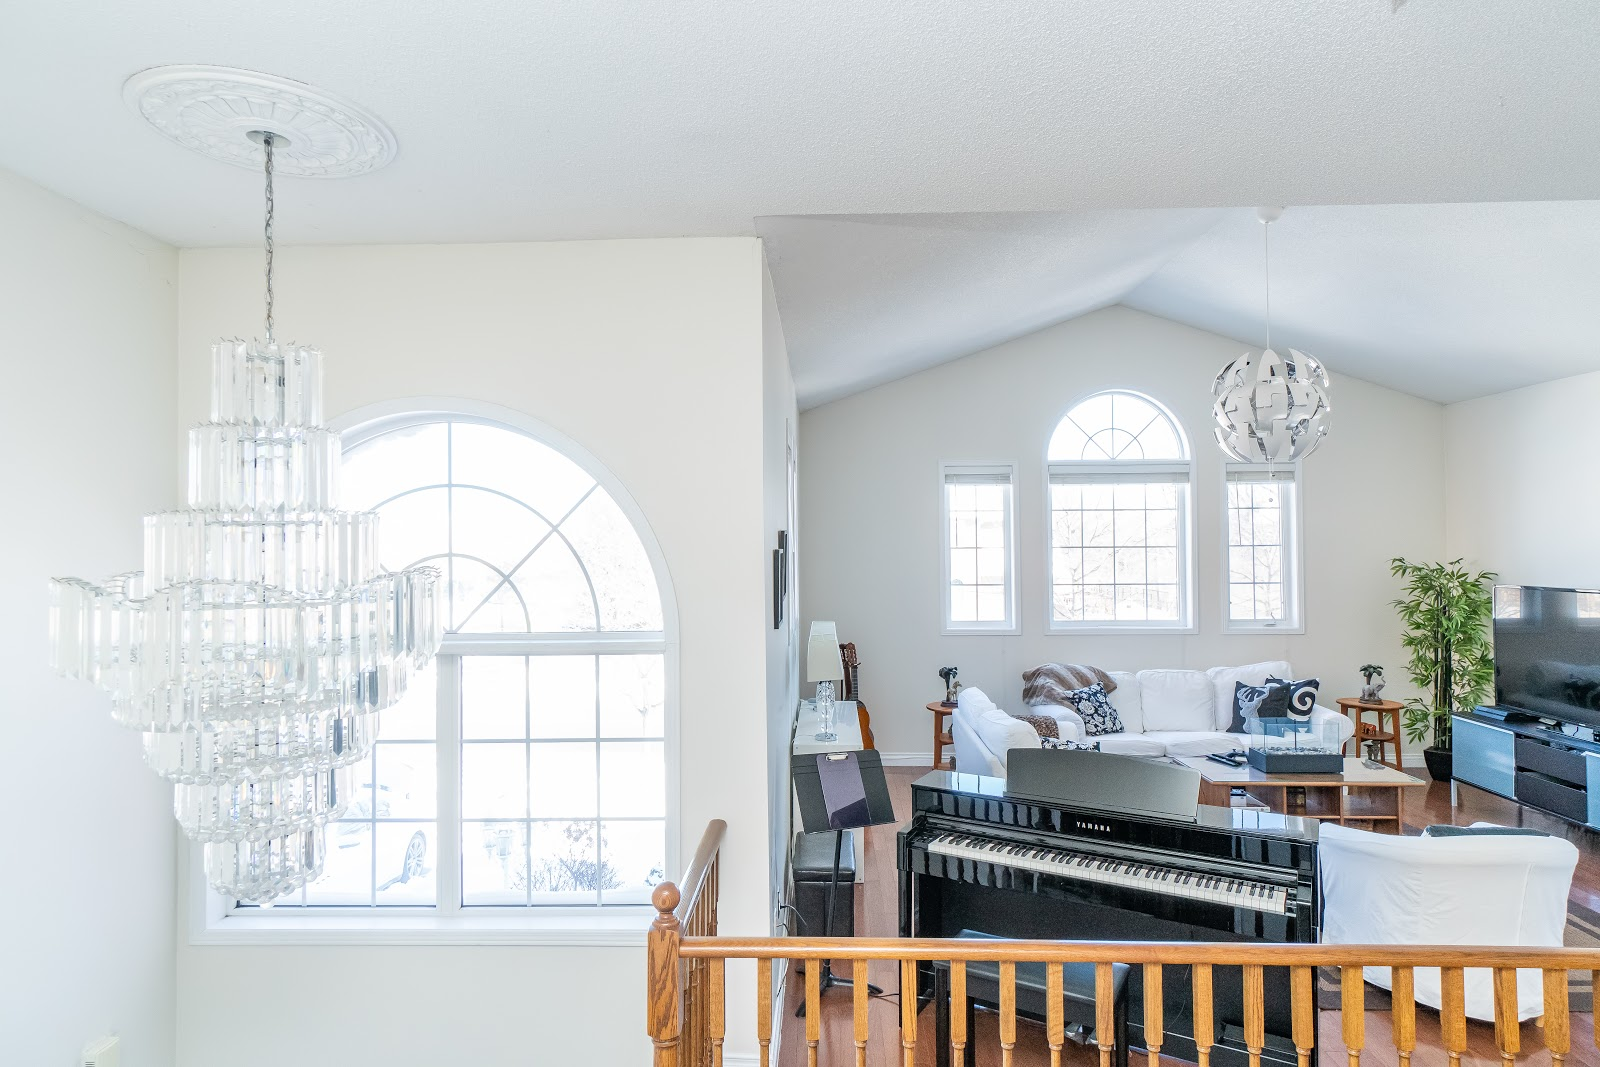 Car Real Estate >> House of the Week: $1.2 Mil Family Home With Top to Bottom Upgrades | Mississauga | insauga.com